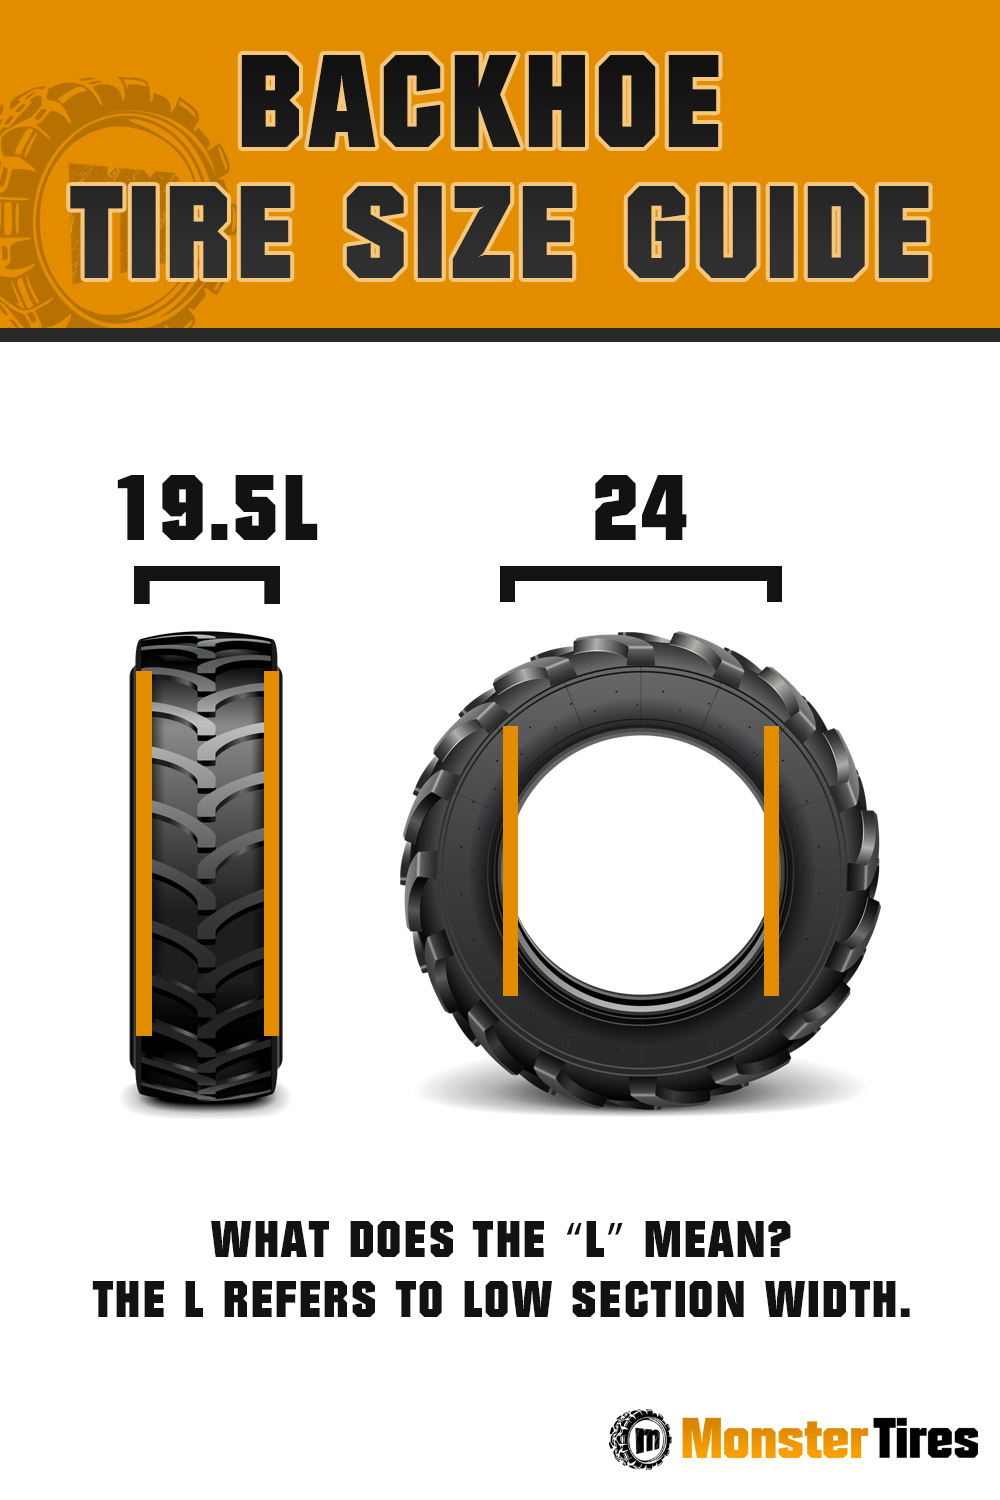 Backhoe Tires Backhoe Tires And Tire Size Guide